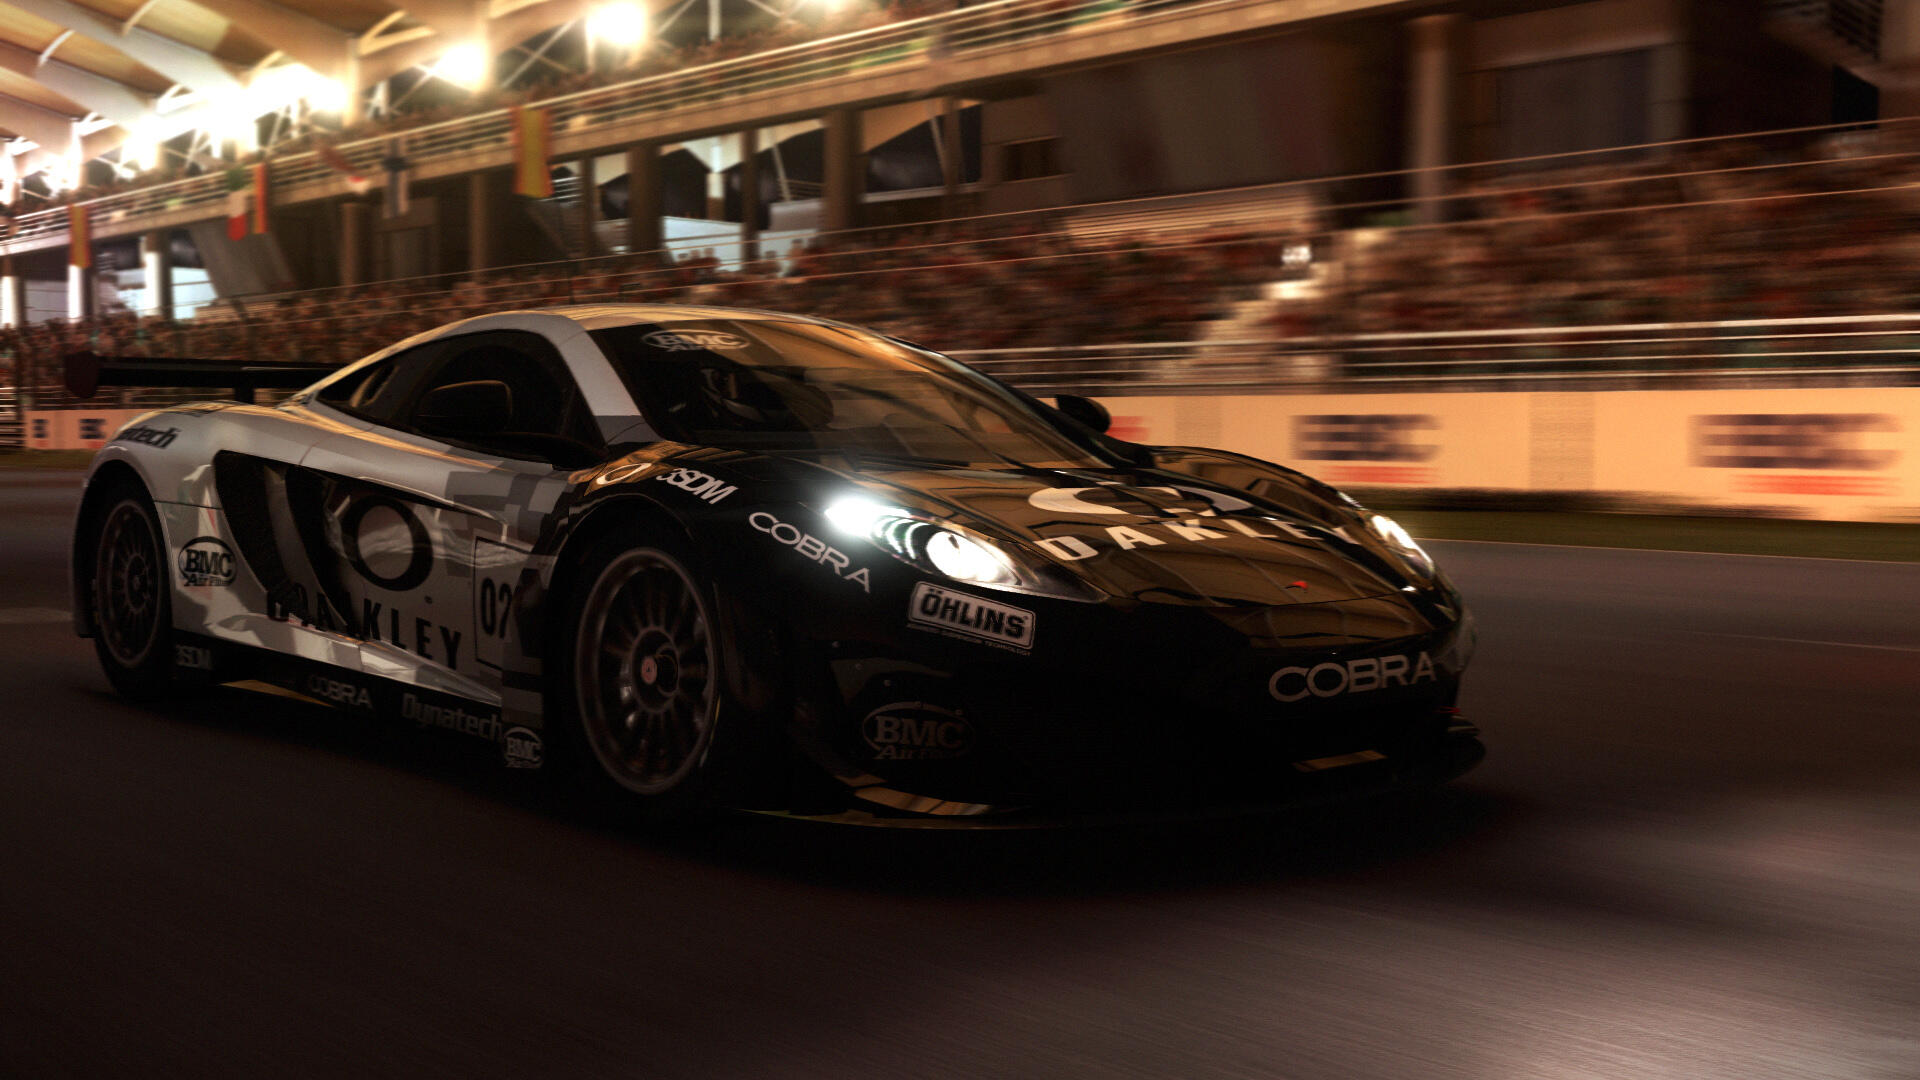 GRID Autosport PS3 Review: Back in the Cockpit